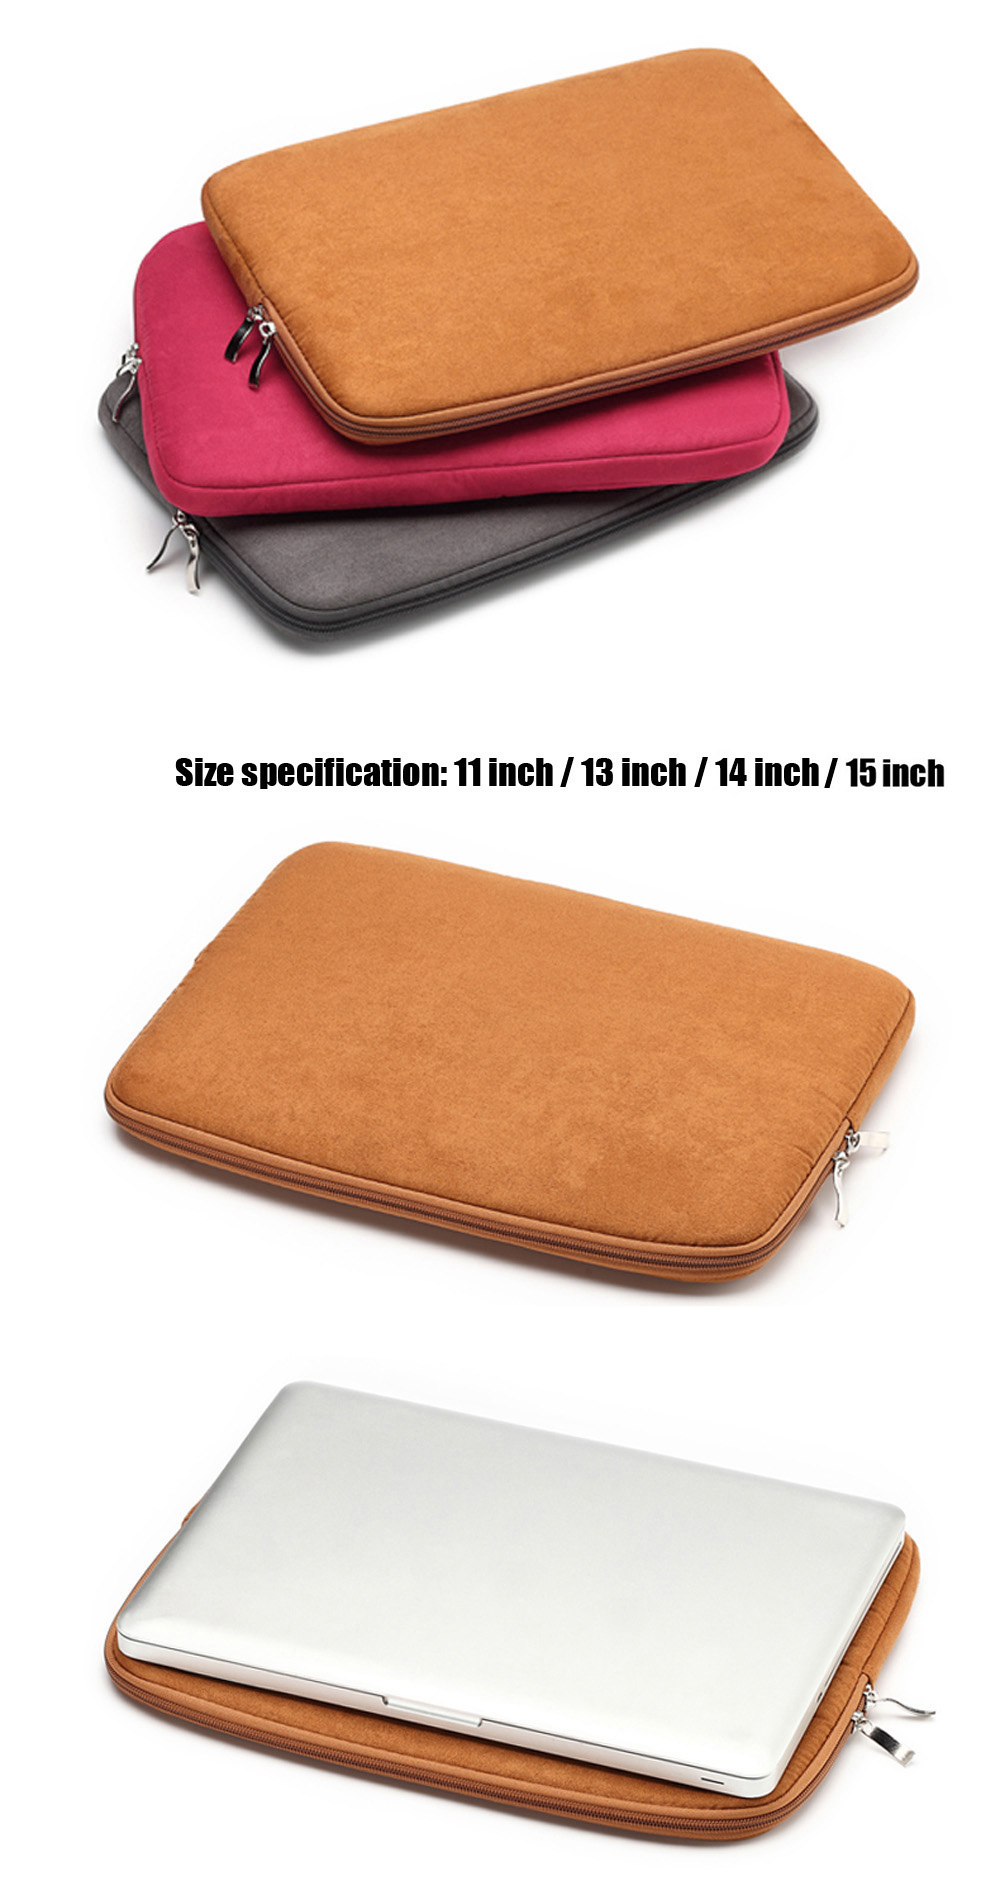 11 inch Laptop Sleeve Bag Protective  Pouch for MacBook Air / Pro Retina